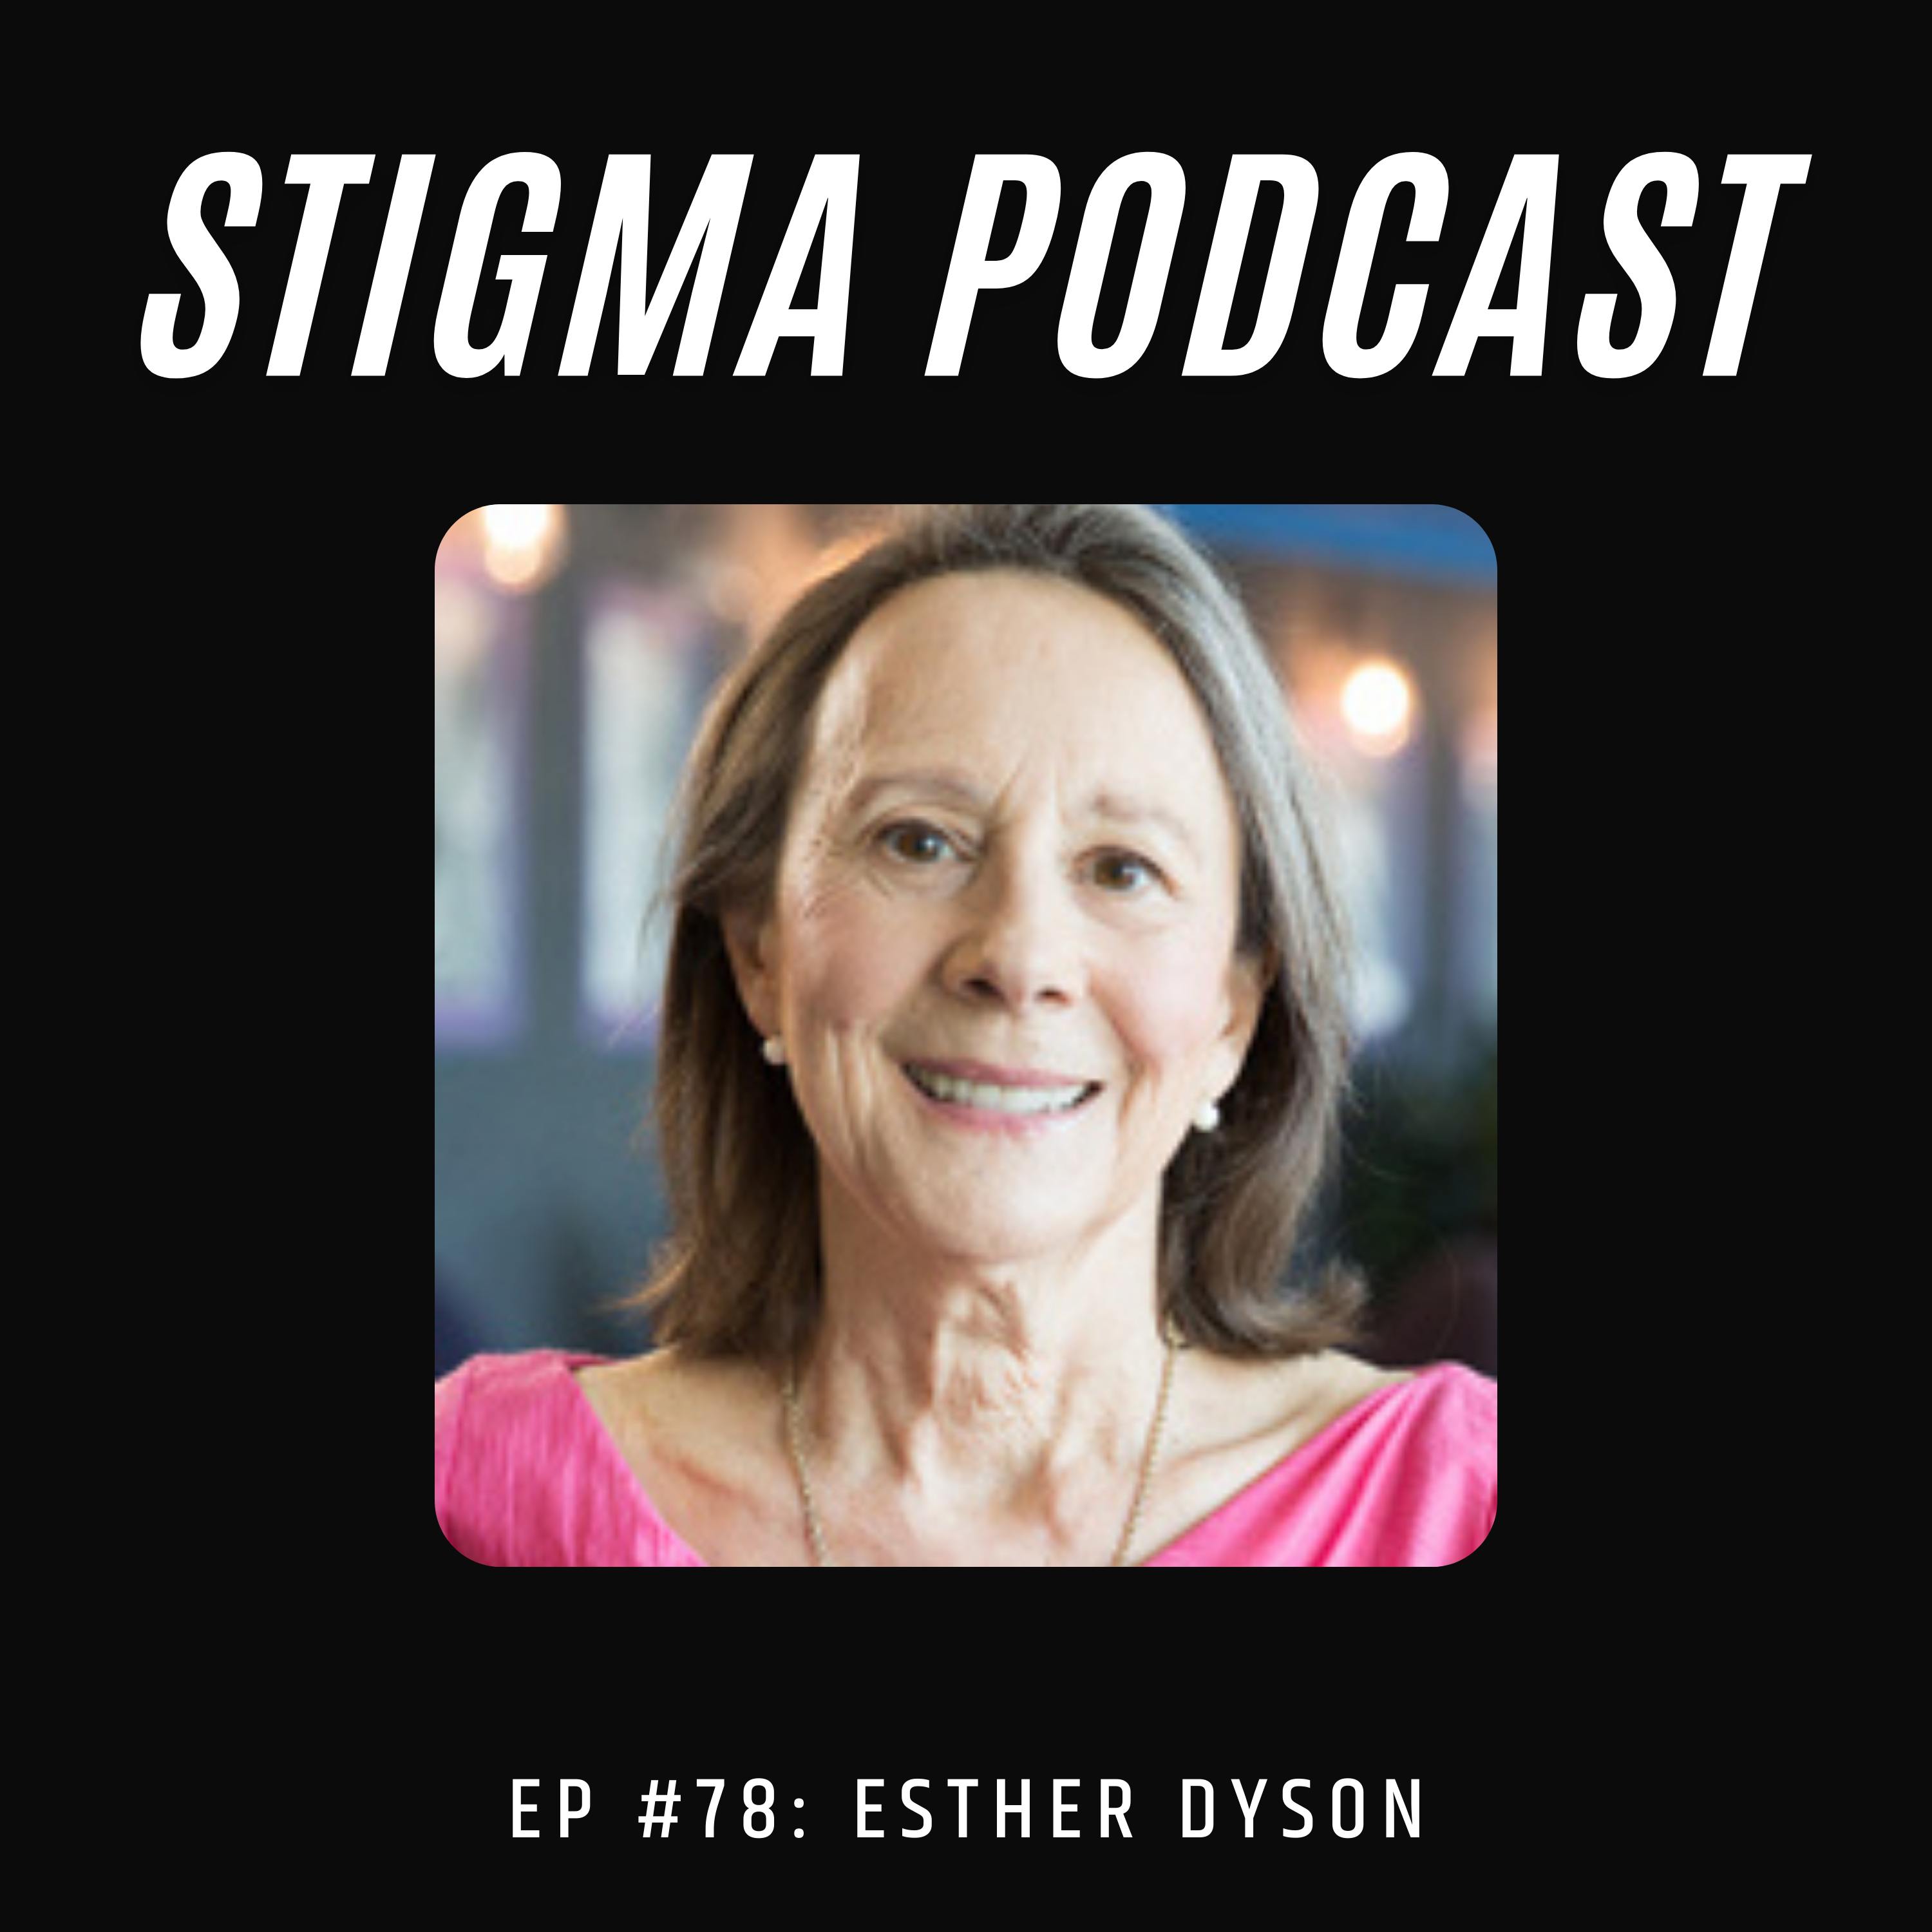 Stigma Podcast - Mental Health - #78 - Esther Dyson: Building a Healthier Society by Investing in Healthcare Startups